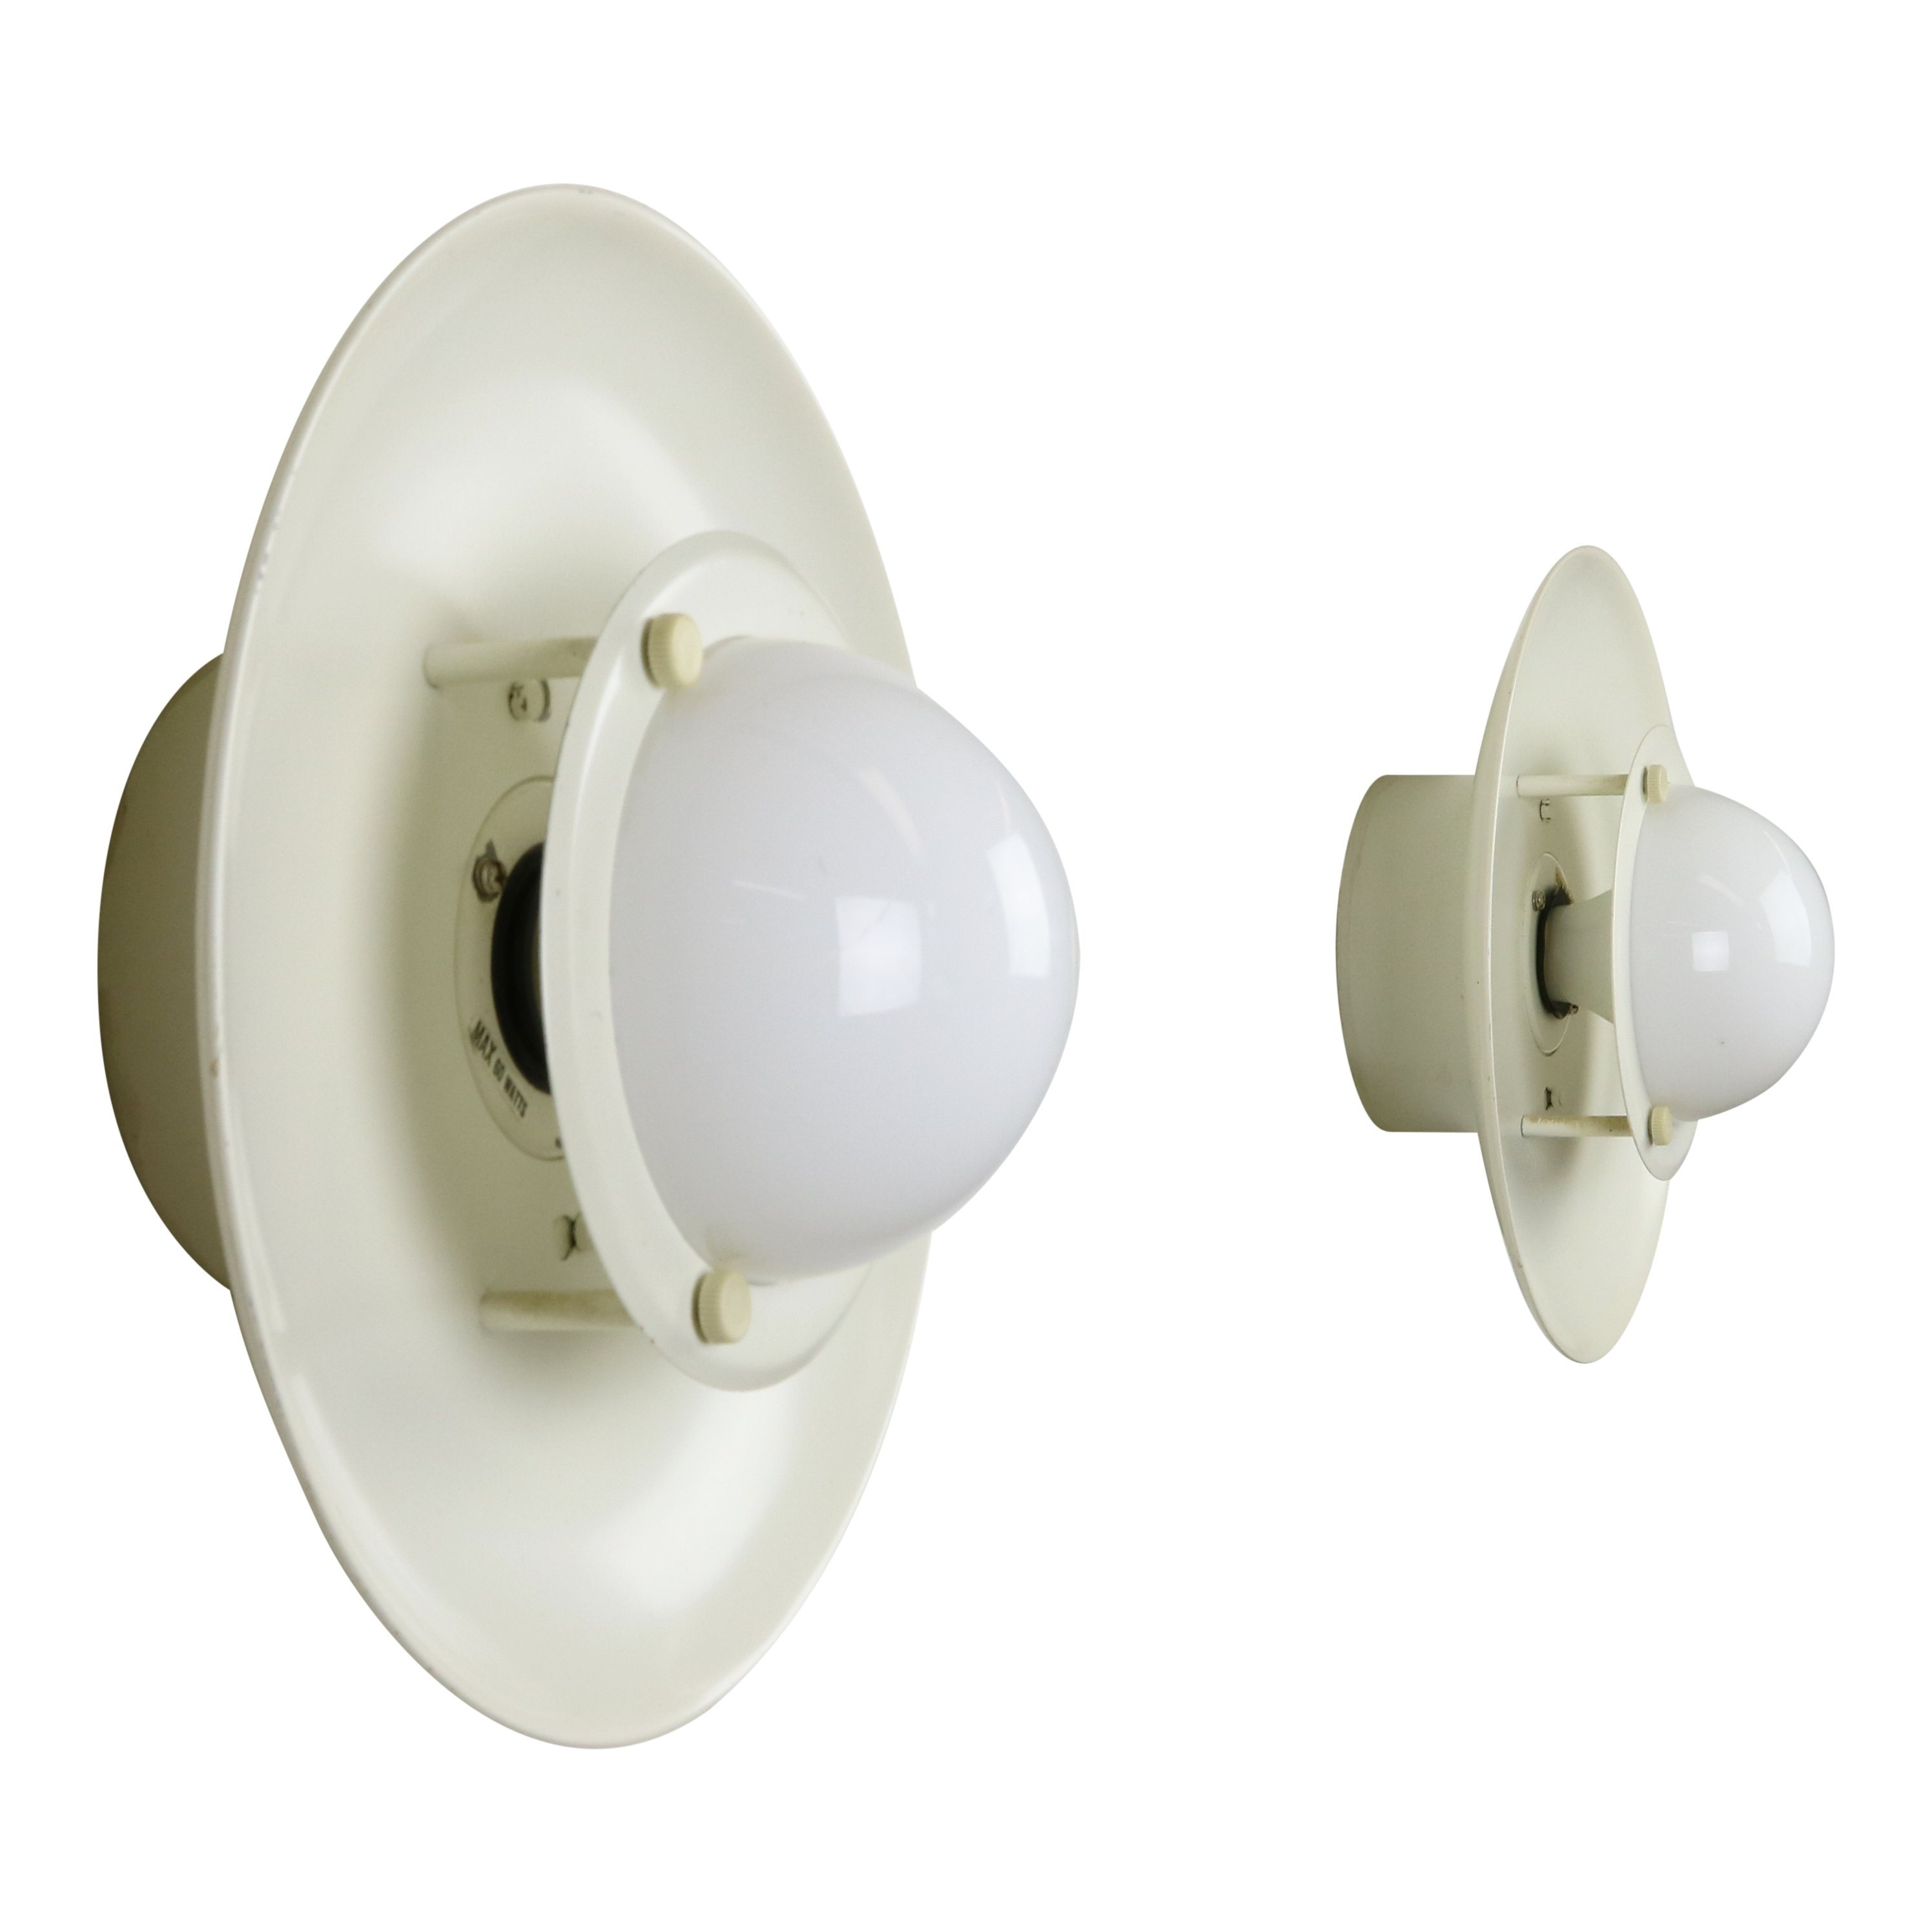 3xCeiling / Wall lights by IKEA, 1970s #1220